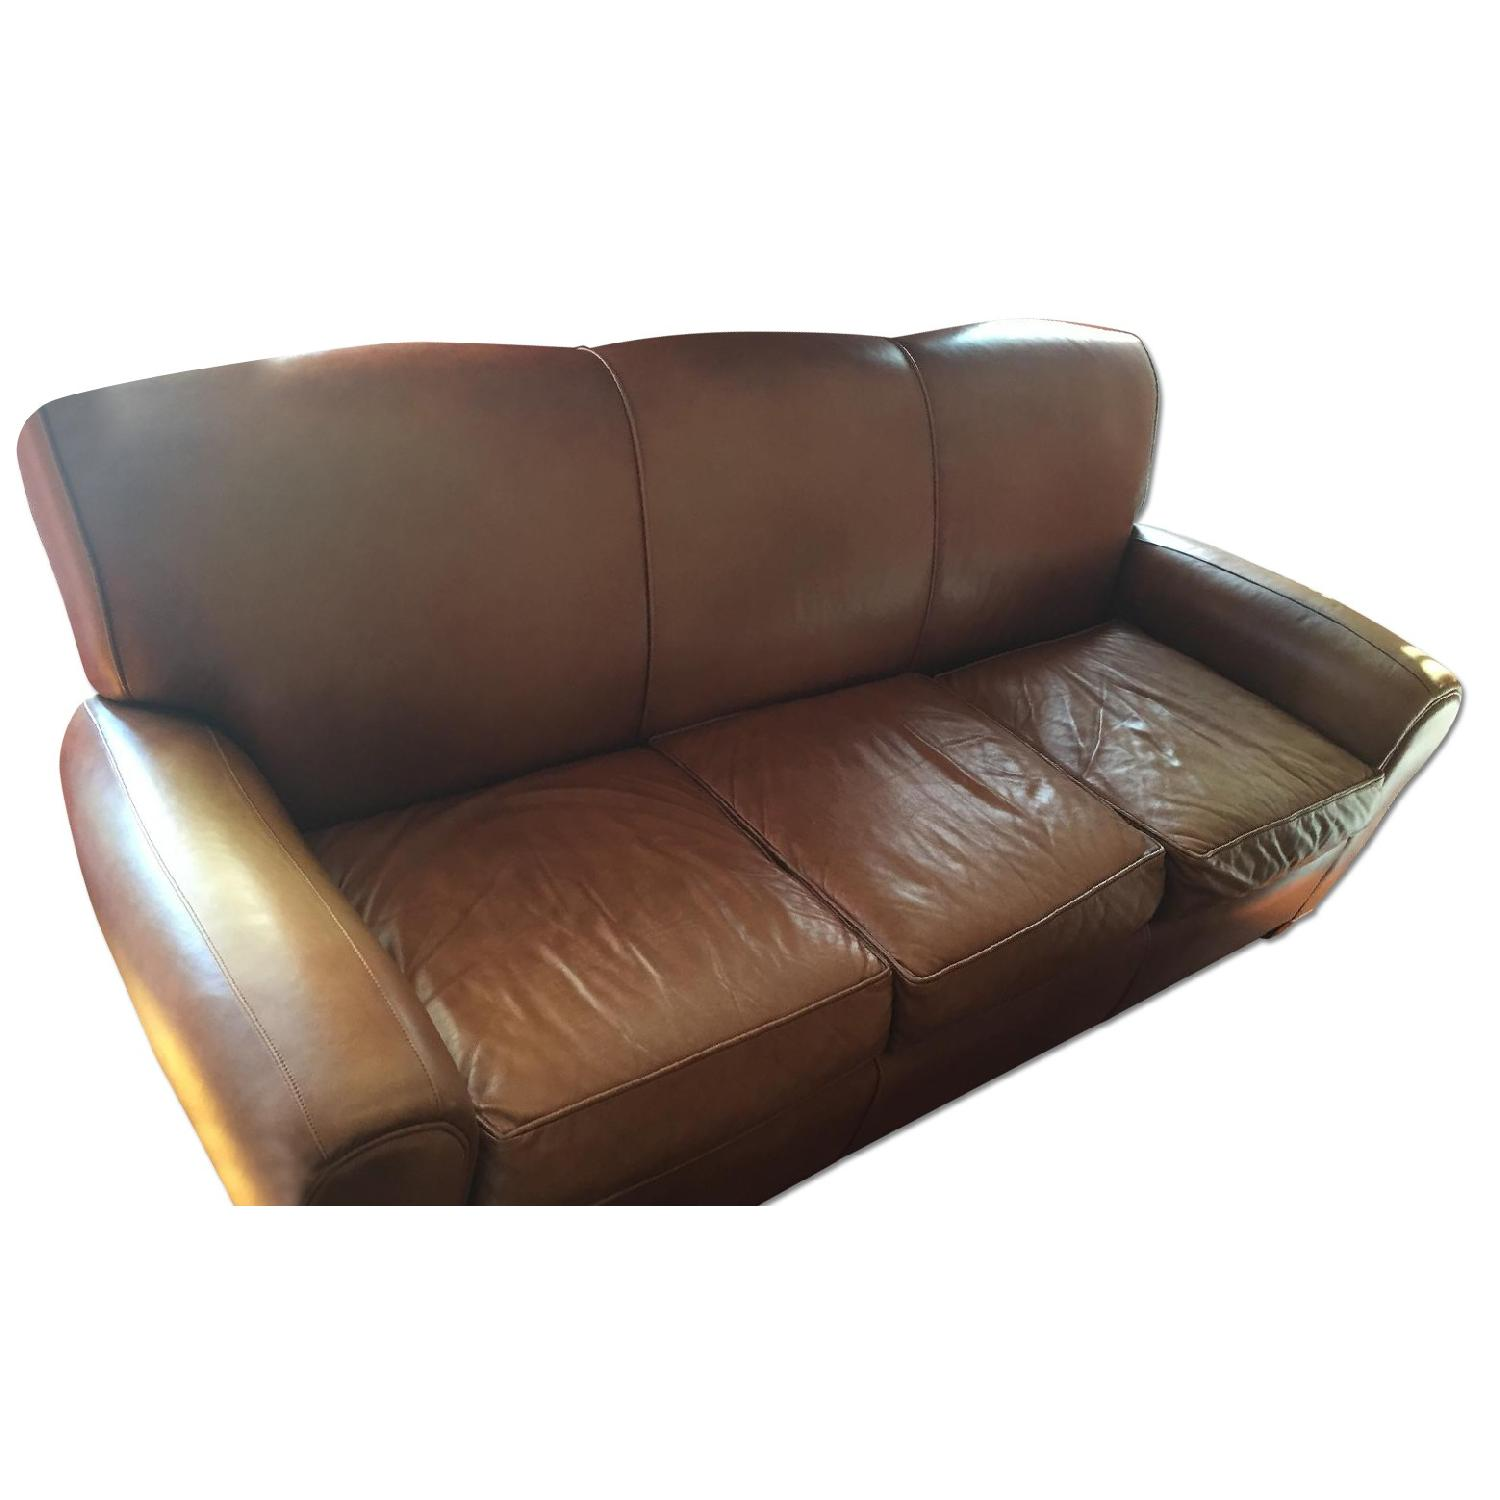 Pottery Barn Manhattan Leather Couch - image-0